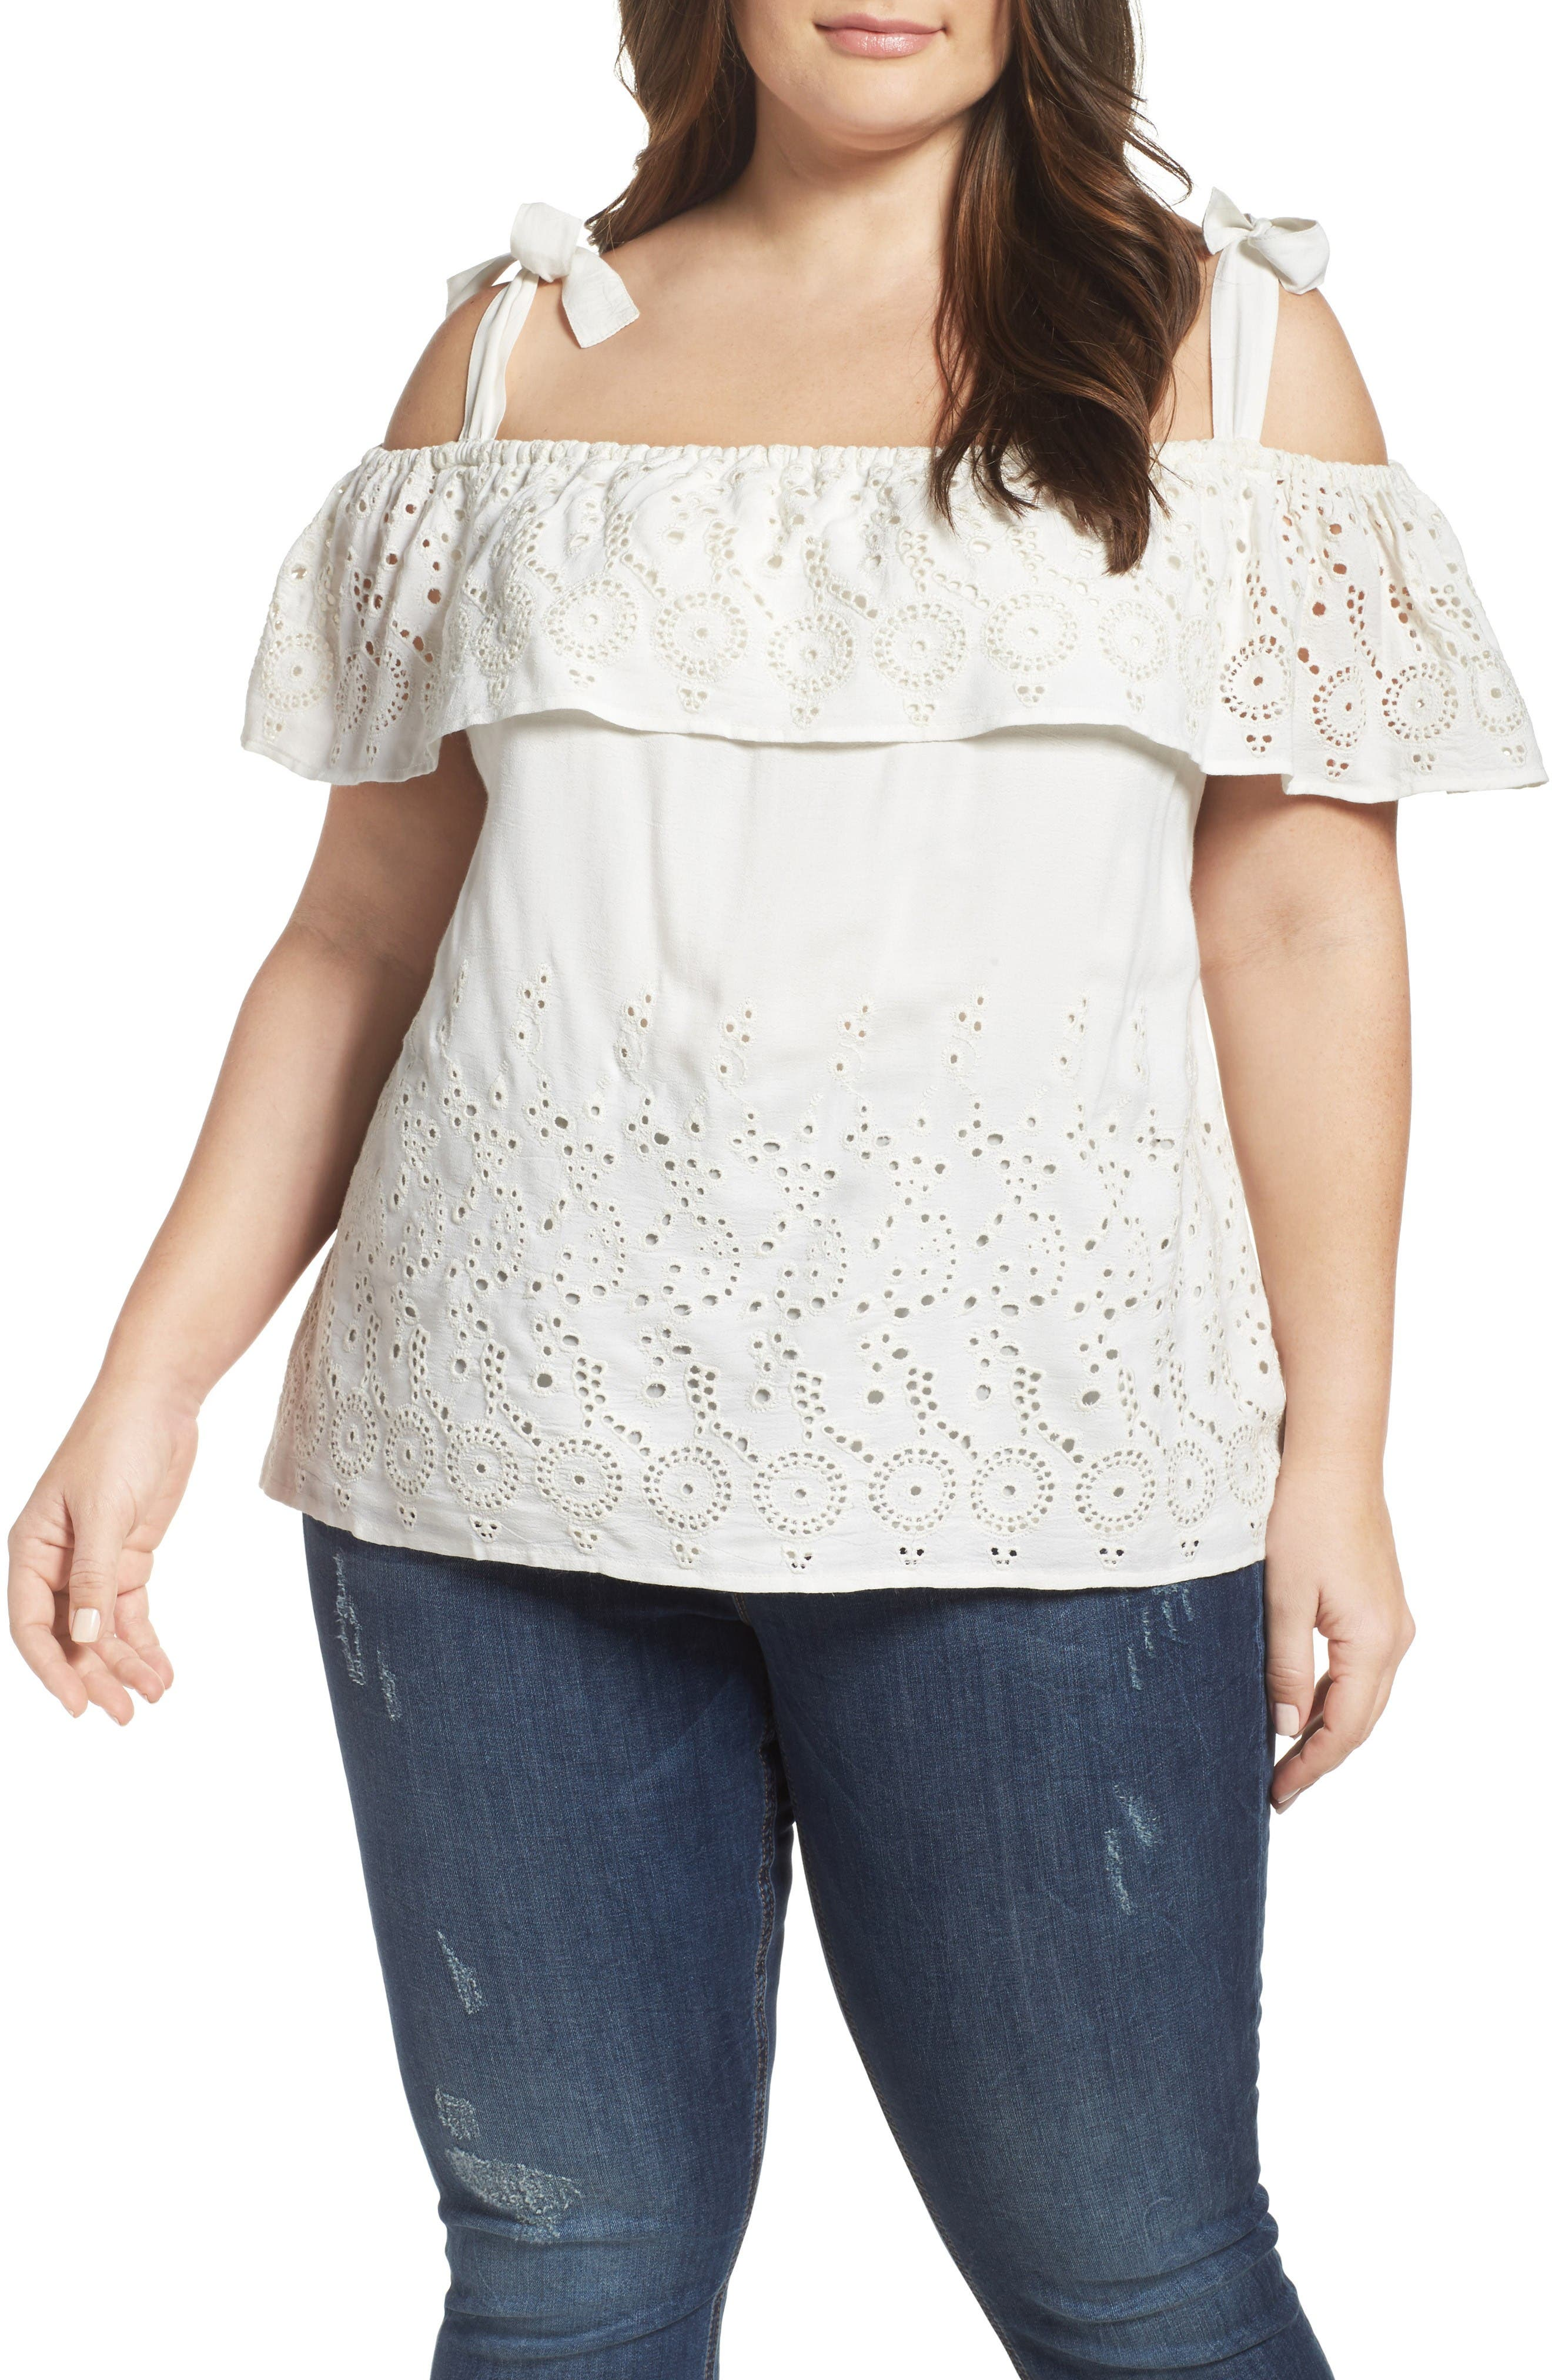 Main Image - Lucky Brand Eyelet Embroidered Off the Shoulder Top (Plus Size)